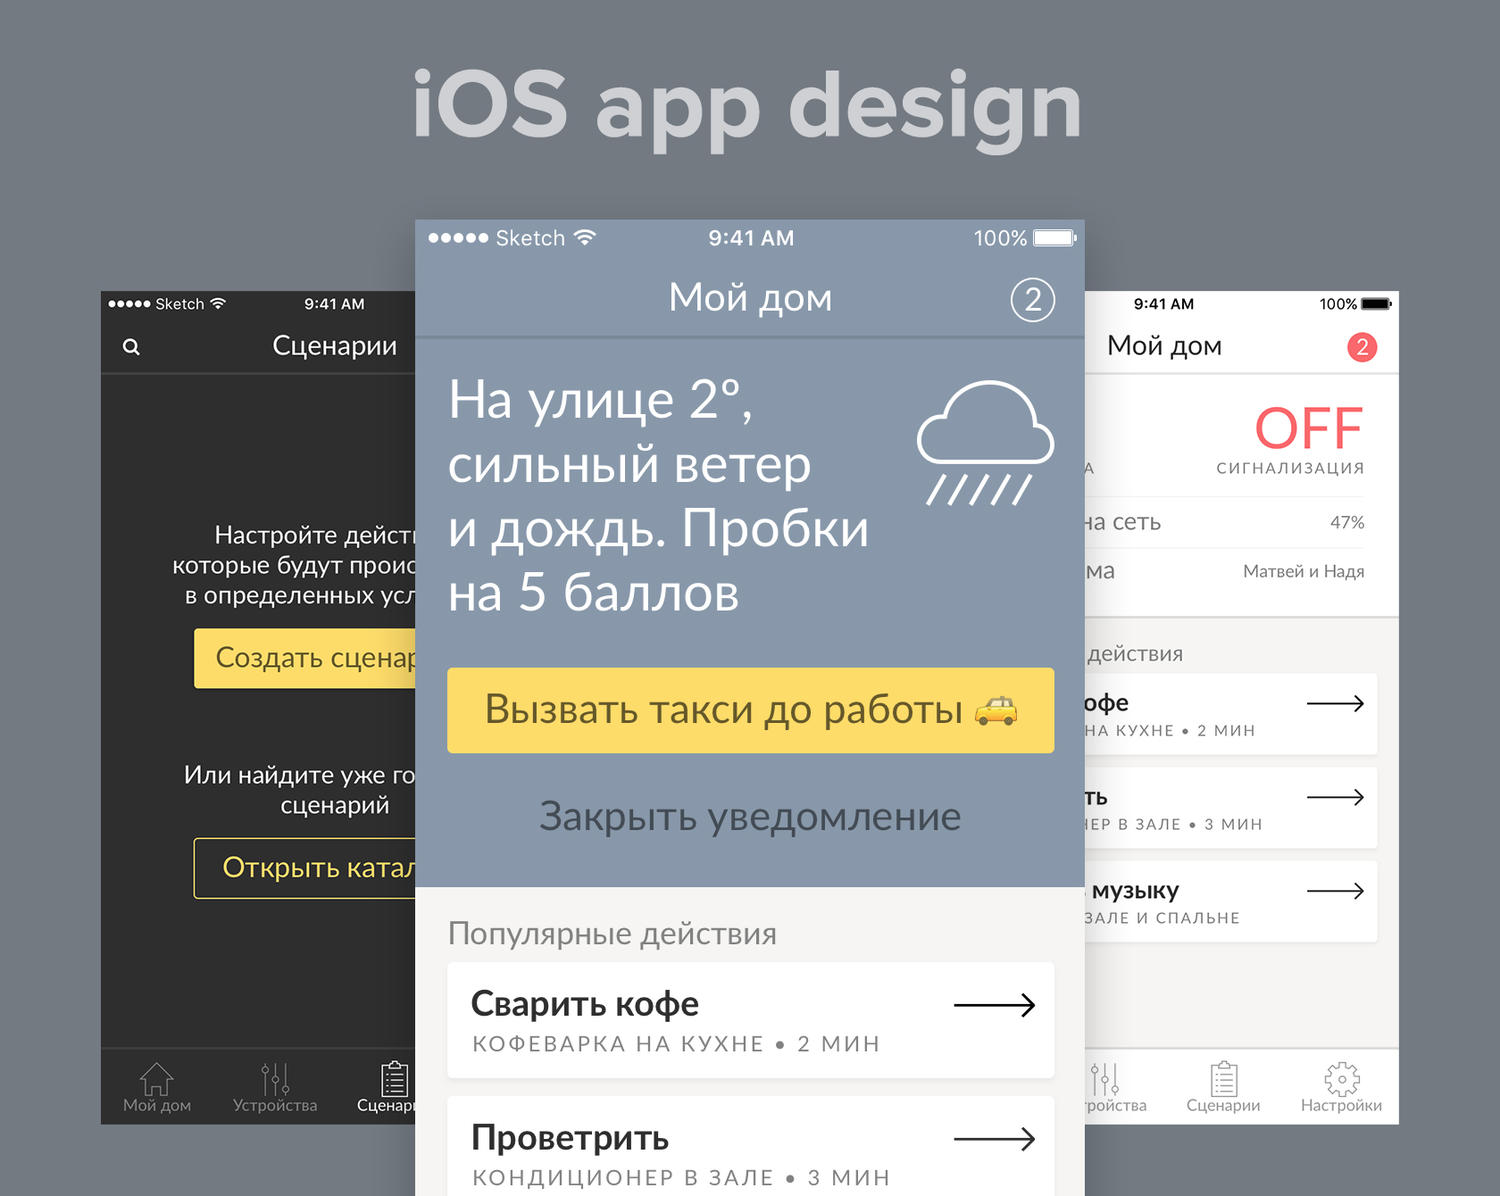 Professional iOS Application Design by oxyberg - 107679